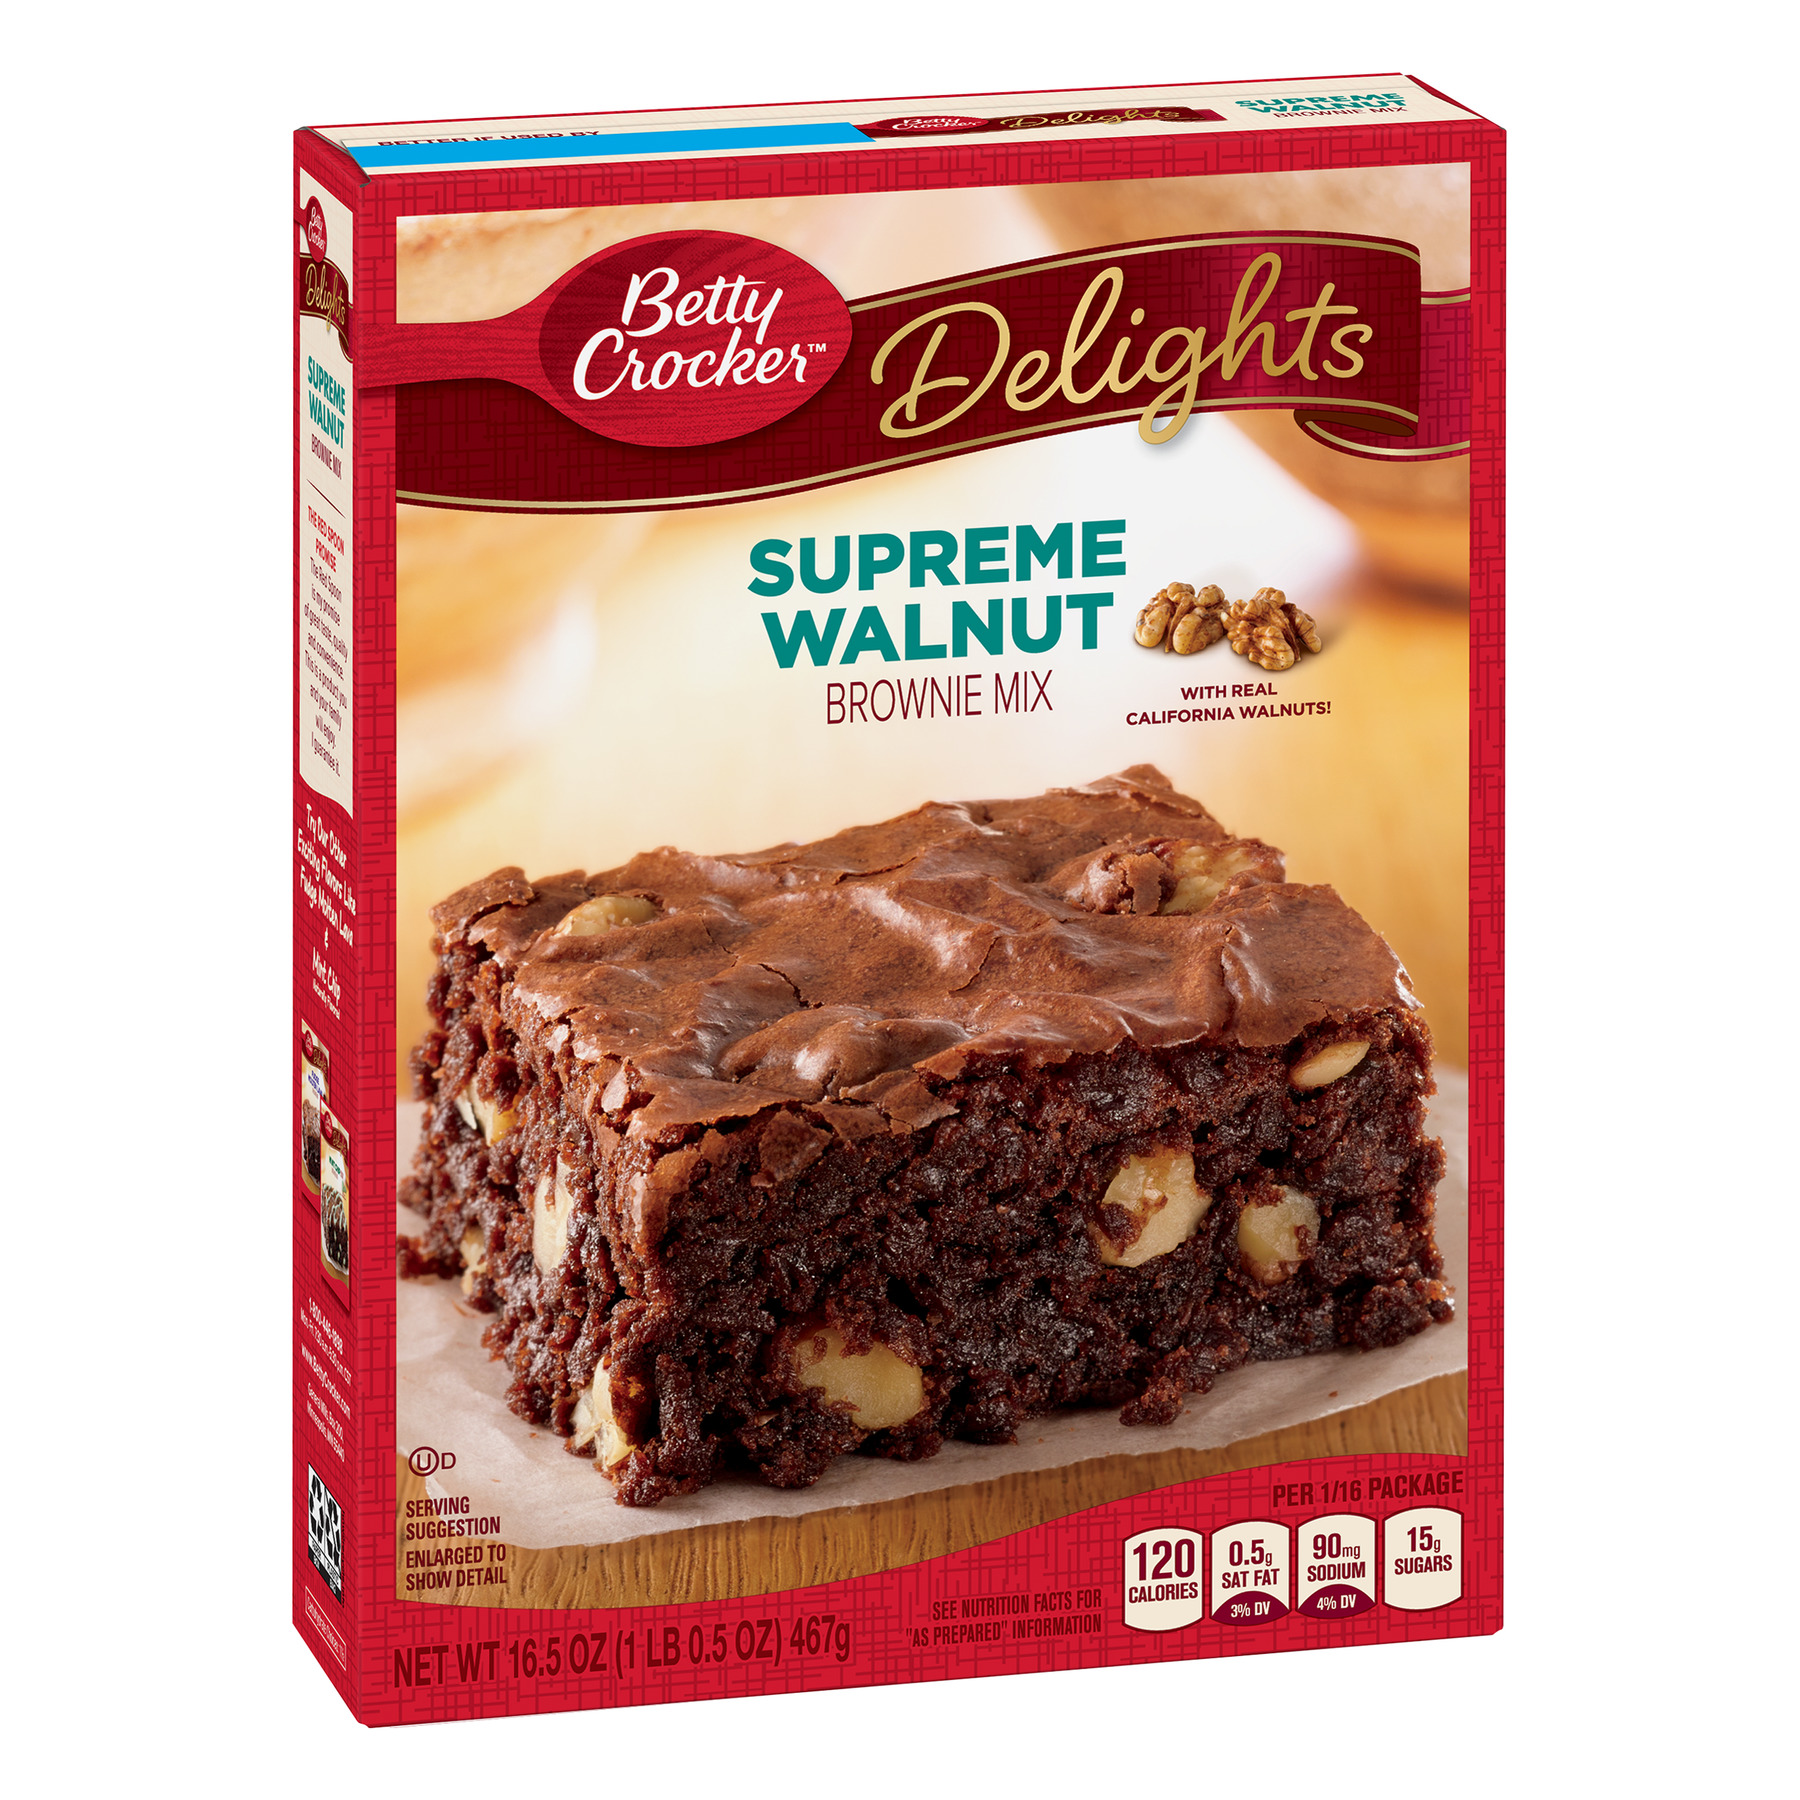 Betty Crocker Delights Brownie Mix Supreme Walnut, 16.5 oz